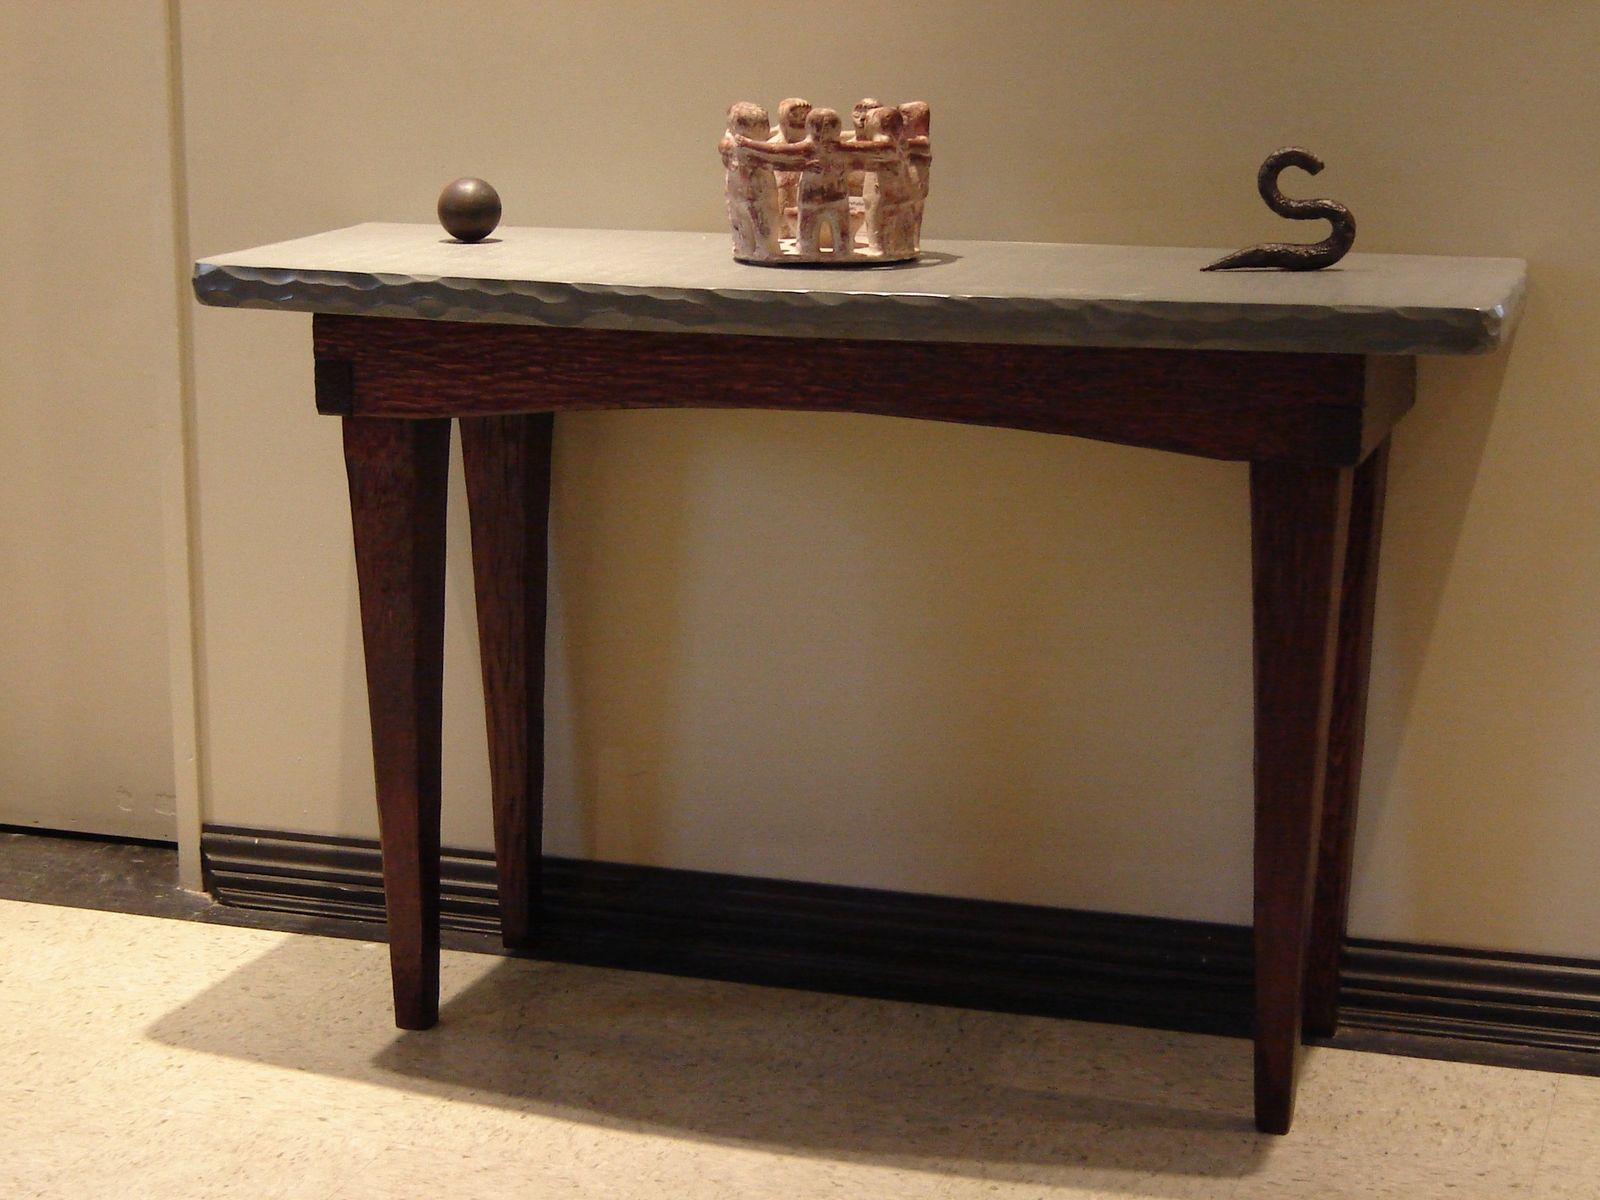 Foyer Chair And Table : Custom foyer table stone and wood by stonehunterstudio